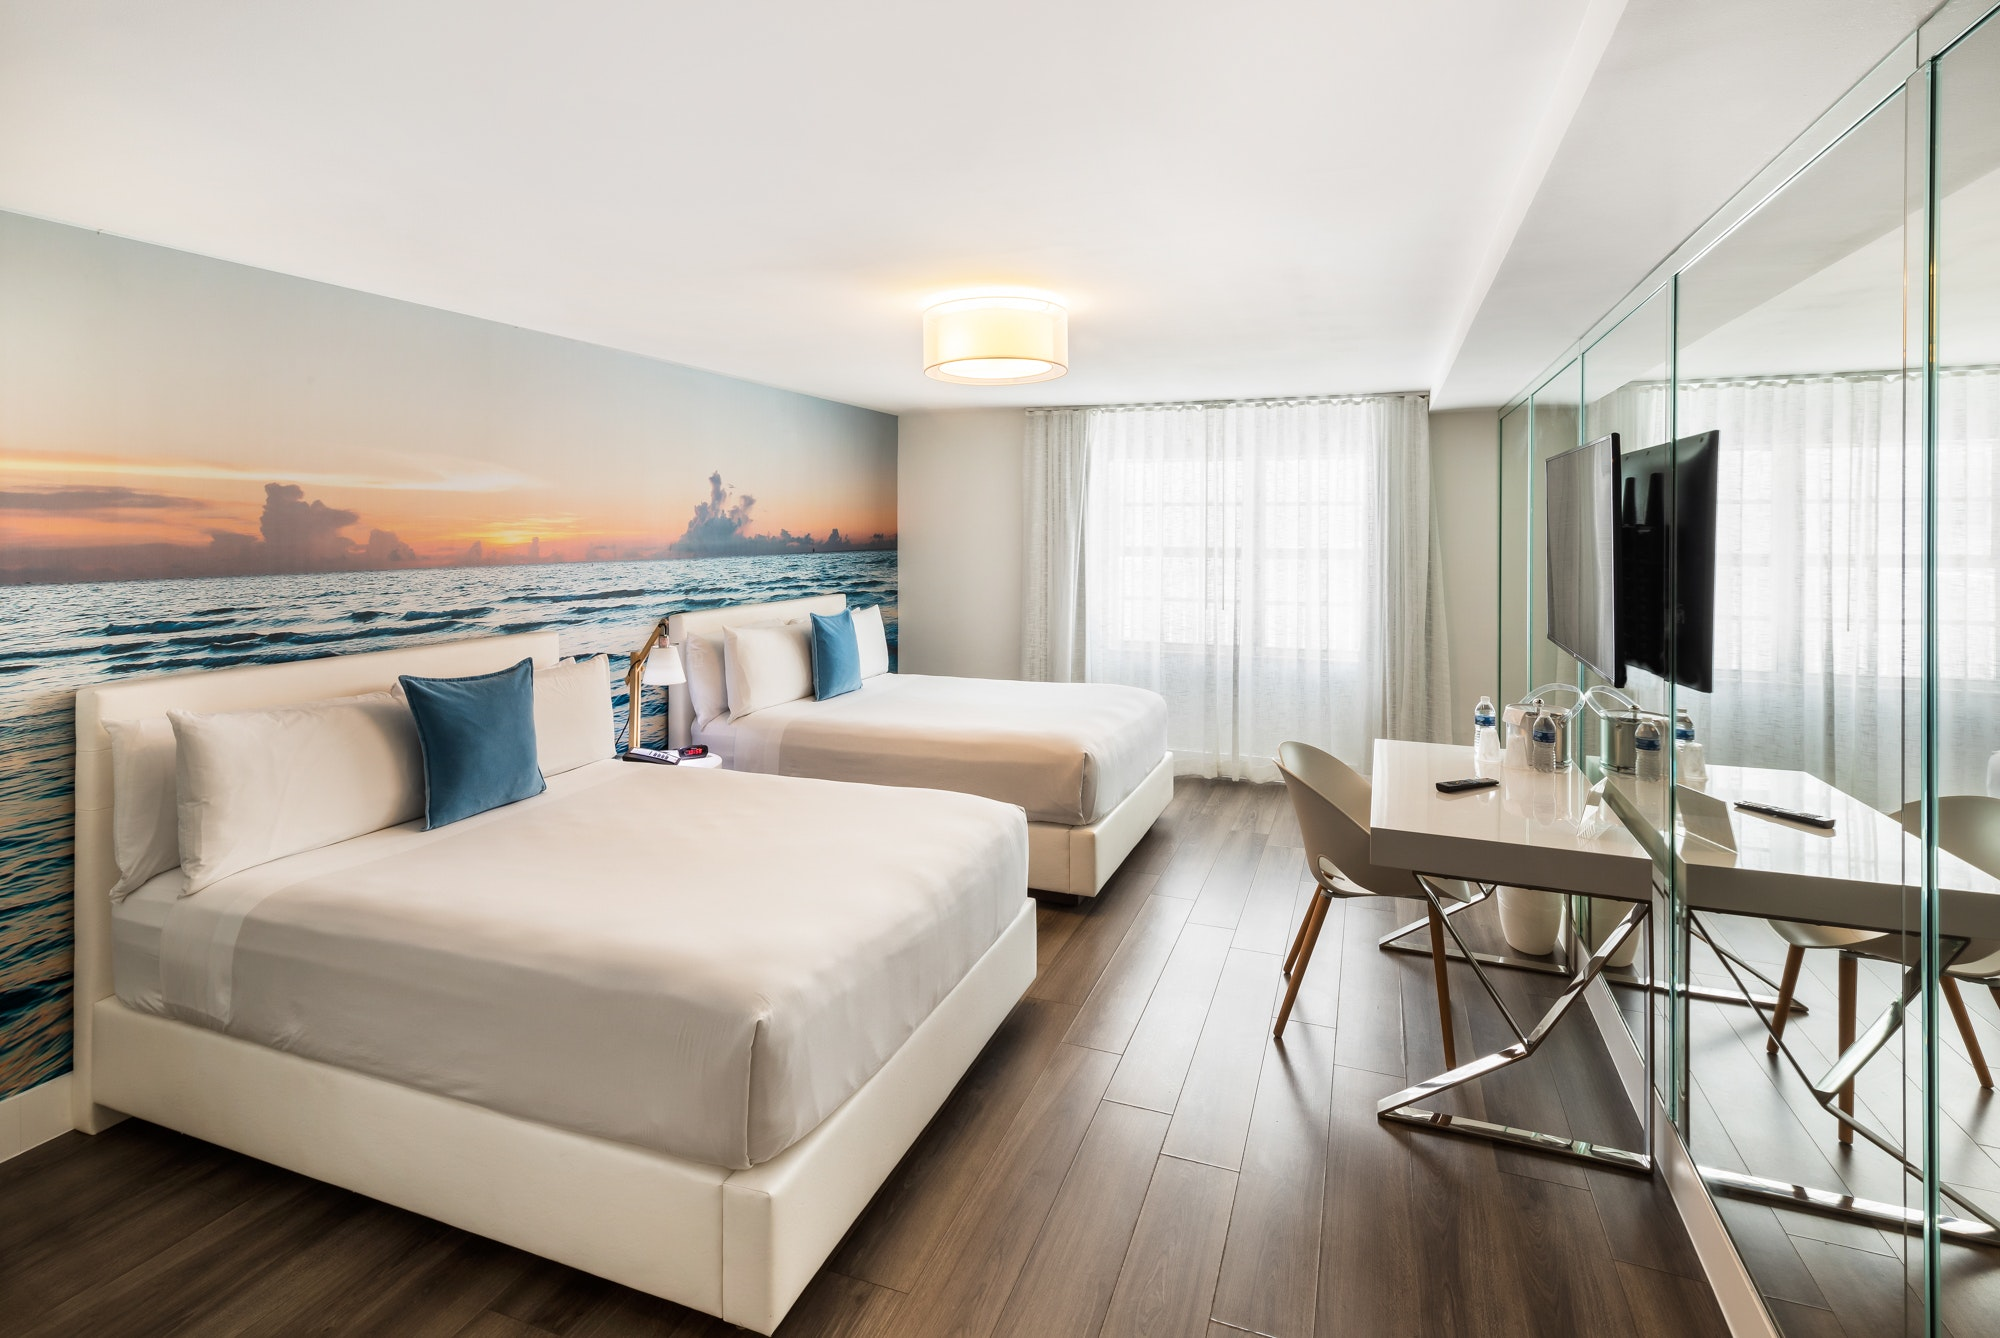 Picture of: Deluxe Room With 2 Queen Beds President Villa Miami Beach